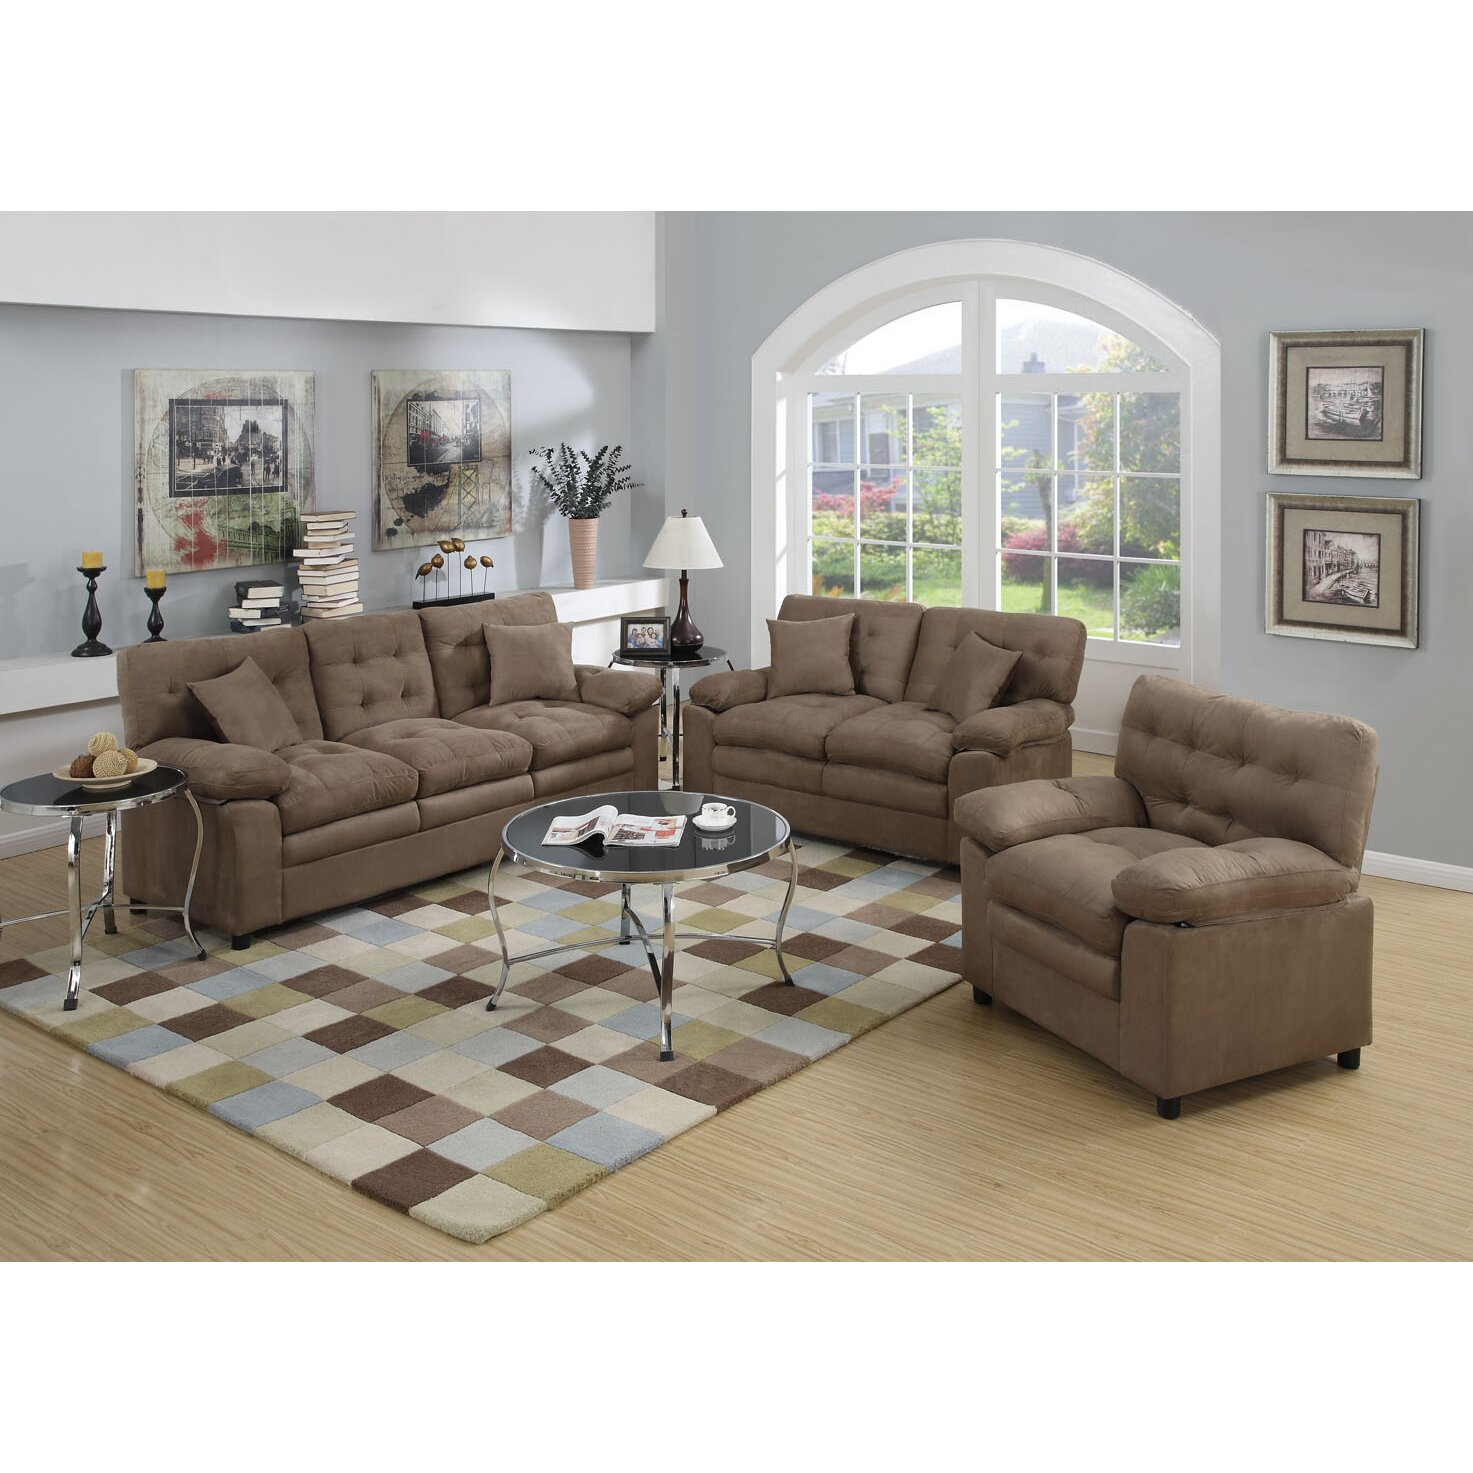 Poundex bobkona colona 3 piece living room set reviews for Living room furniture sets